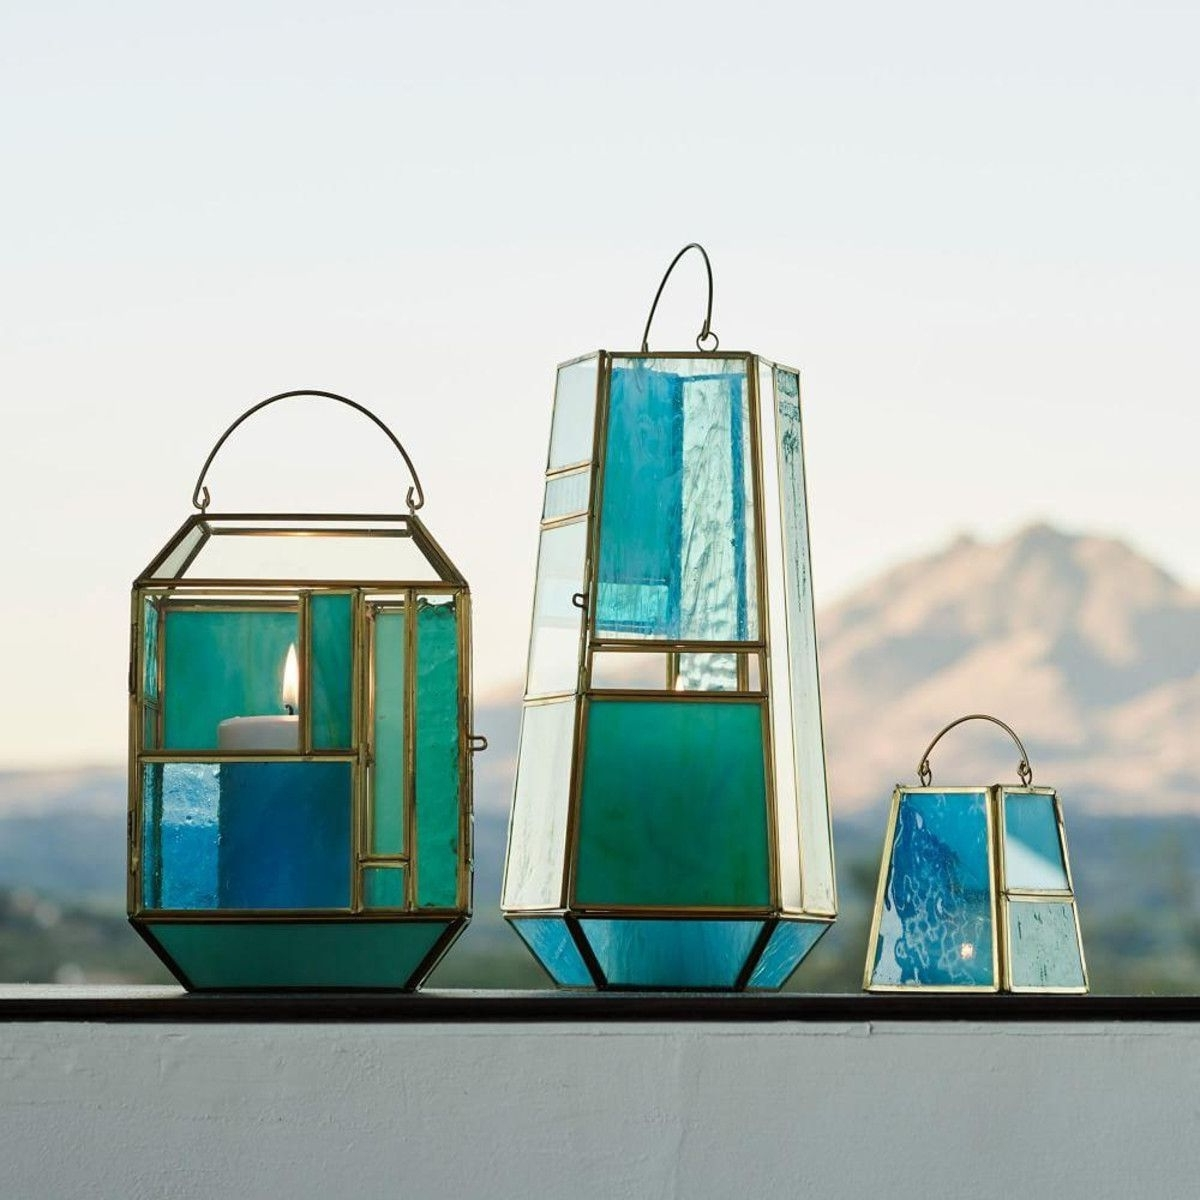 Blue Outdoor Lanterns With Favorite Hang These Stained Glass Inspired Lanterns Inside Or Outside, To (Gallery 7 of 20)